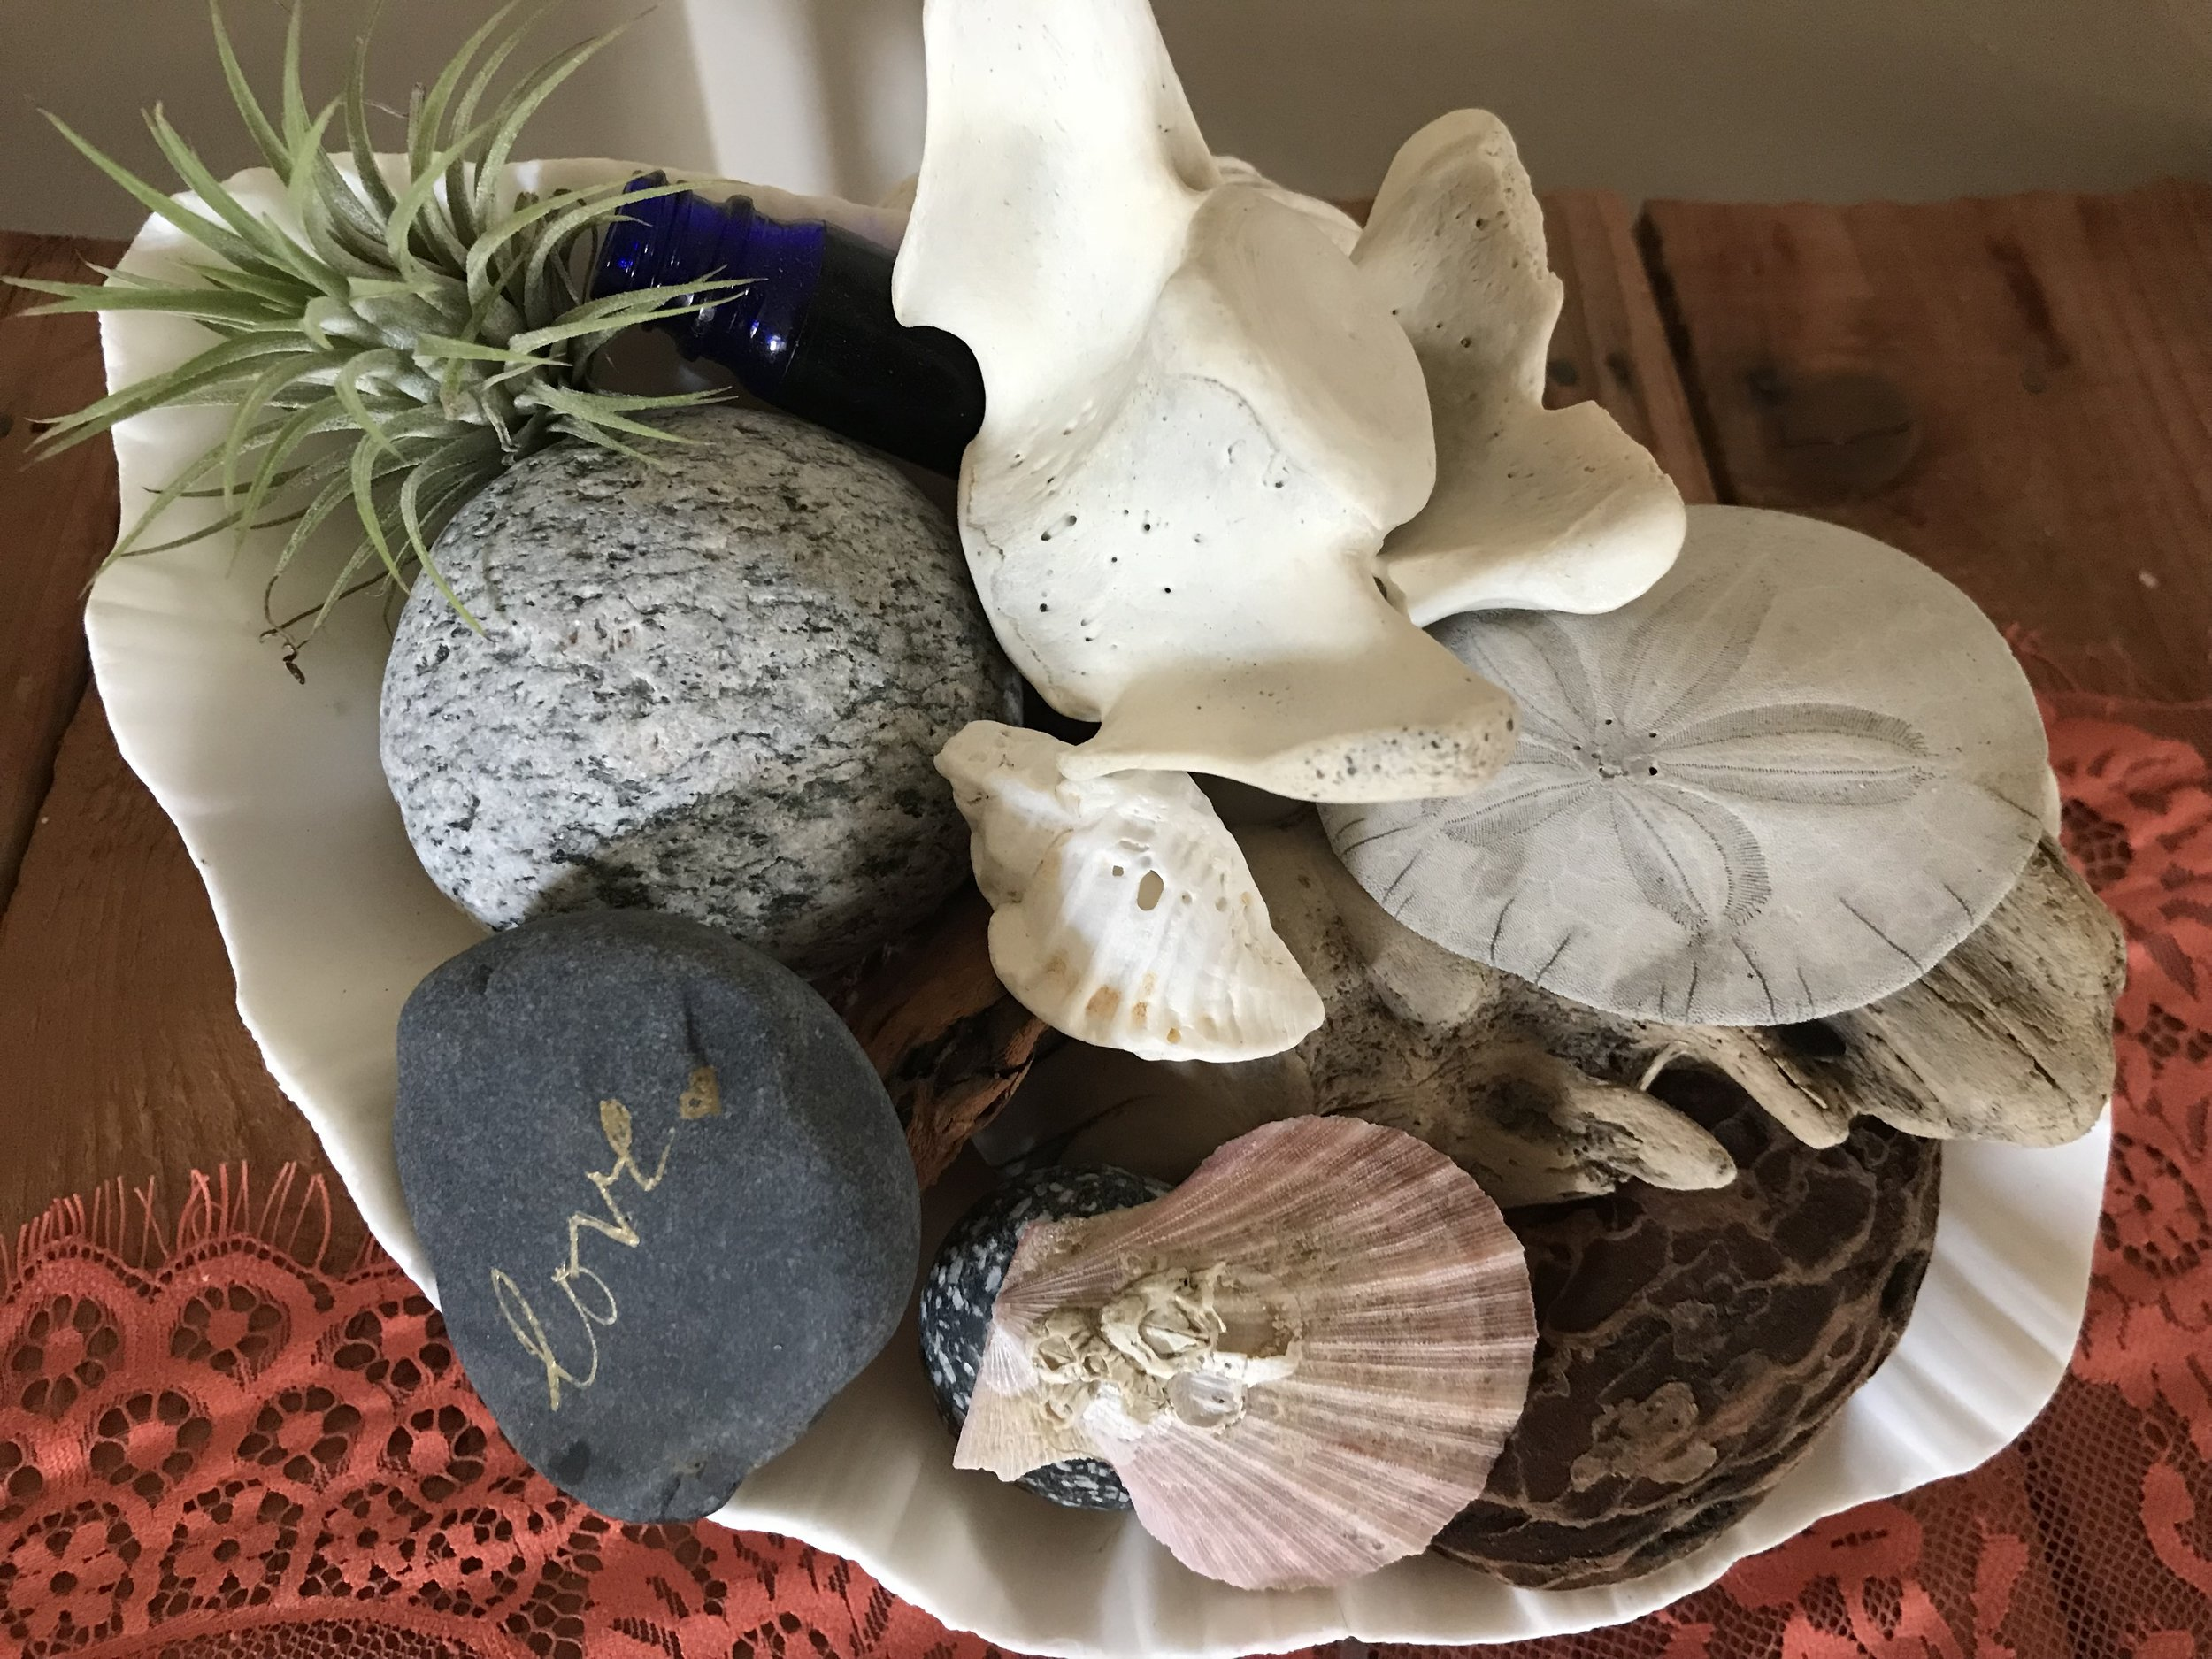 Display your beach treasures at home to remember your island getaway